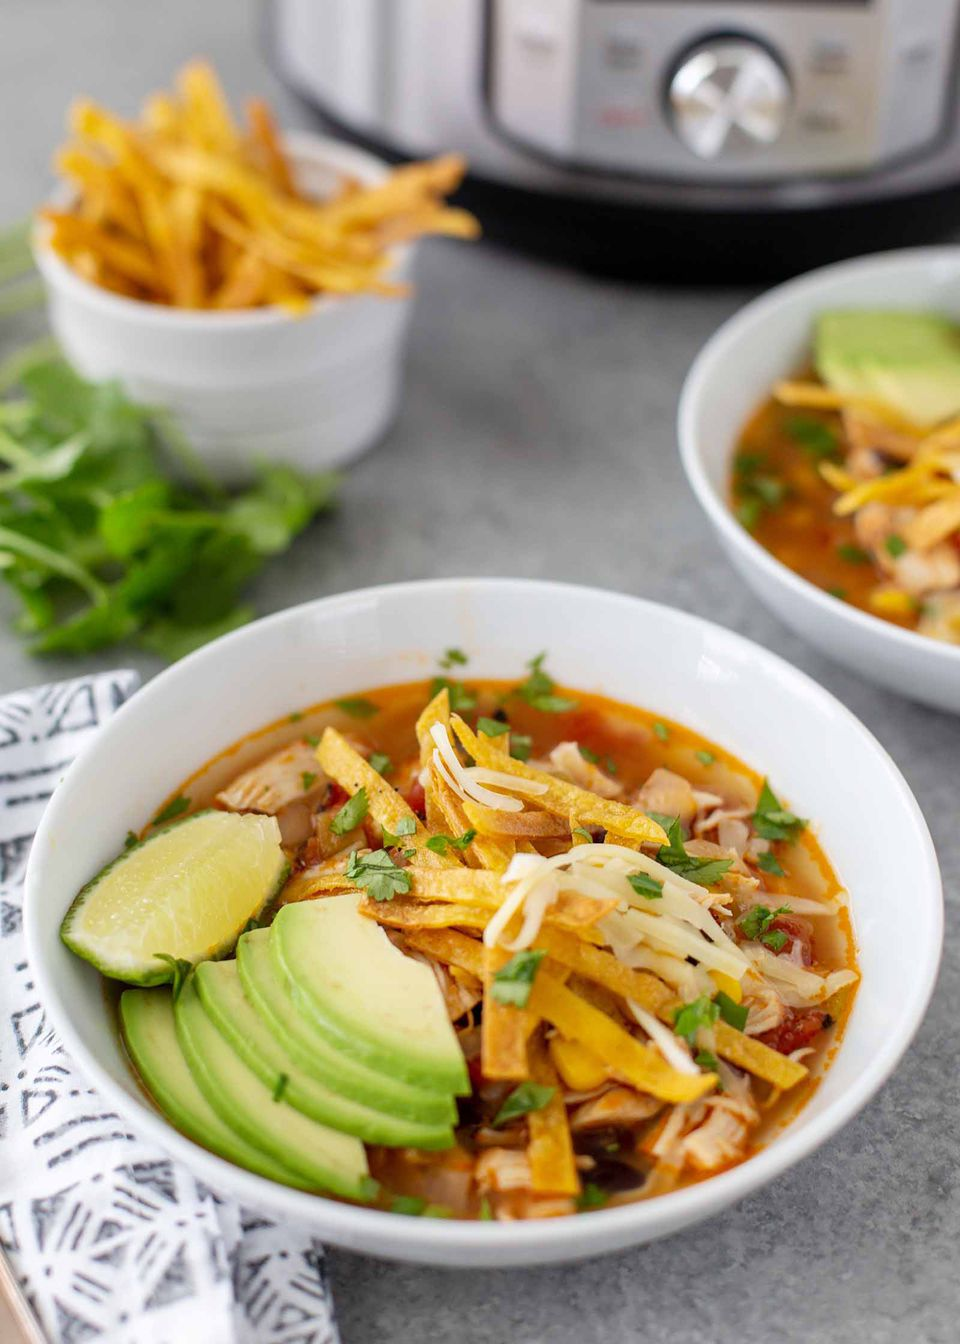 A white bowl of the best instant pot chicken tortilla soup. Each bowl has a red broth with shredded chicken, slices of fried tortilla, cheese, lime wedge and avocado slices. A couple stems of cilantro are in the bottom right corner. A ramekin has strips of fried tortillas inside and the bottom of an instant pot is visible at the top of the photo. A grey patterned linen napkin is next to the bowl. A second bowl of soup is partially visible to the right of the first bowl.